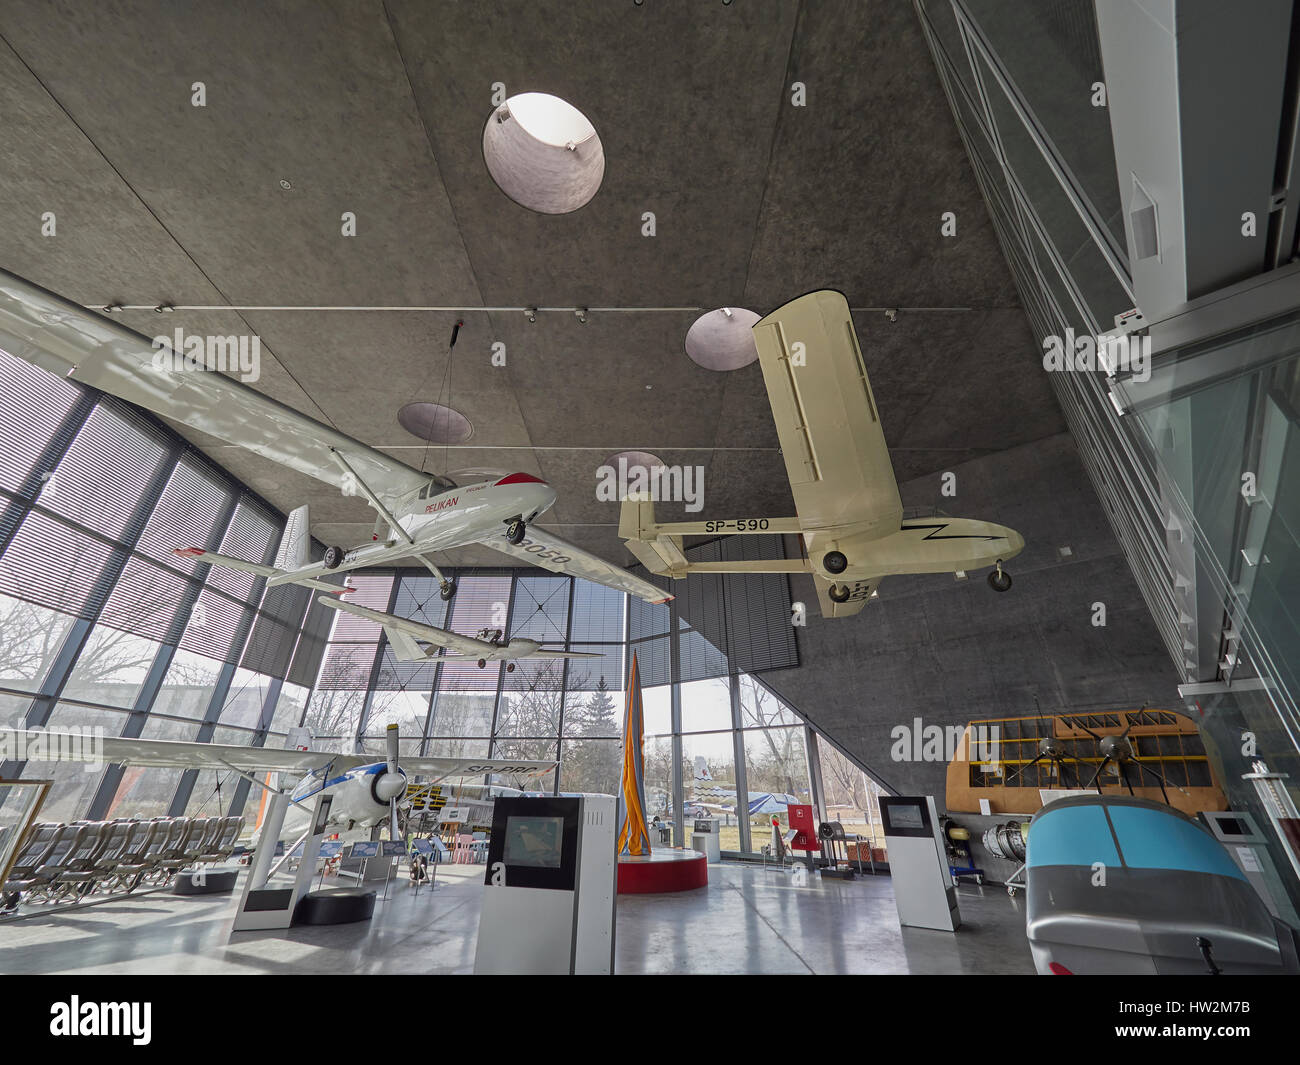 Polish Aviation Museum Krakow in Poland - Stock Image